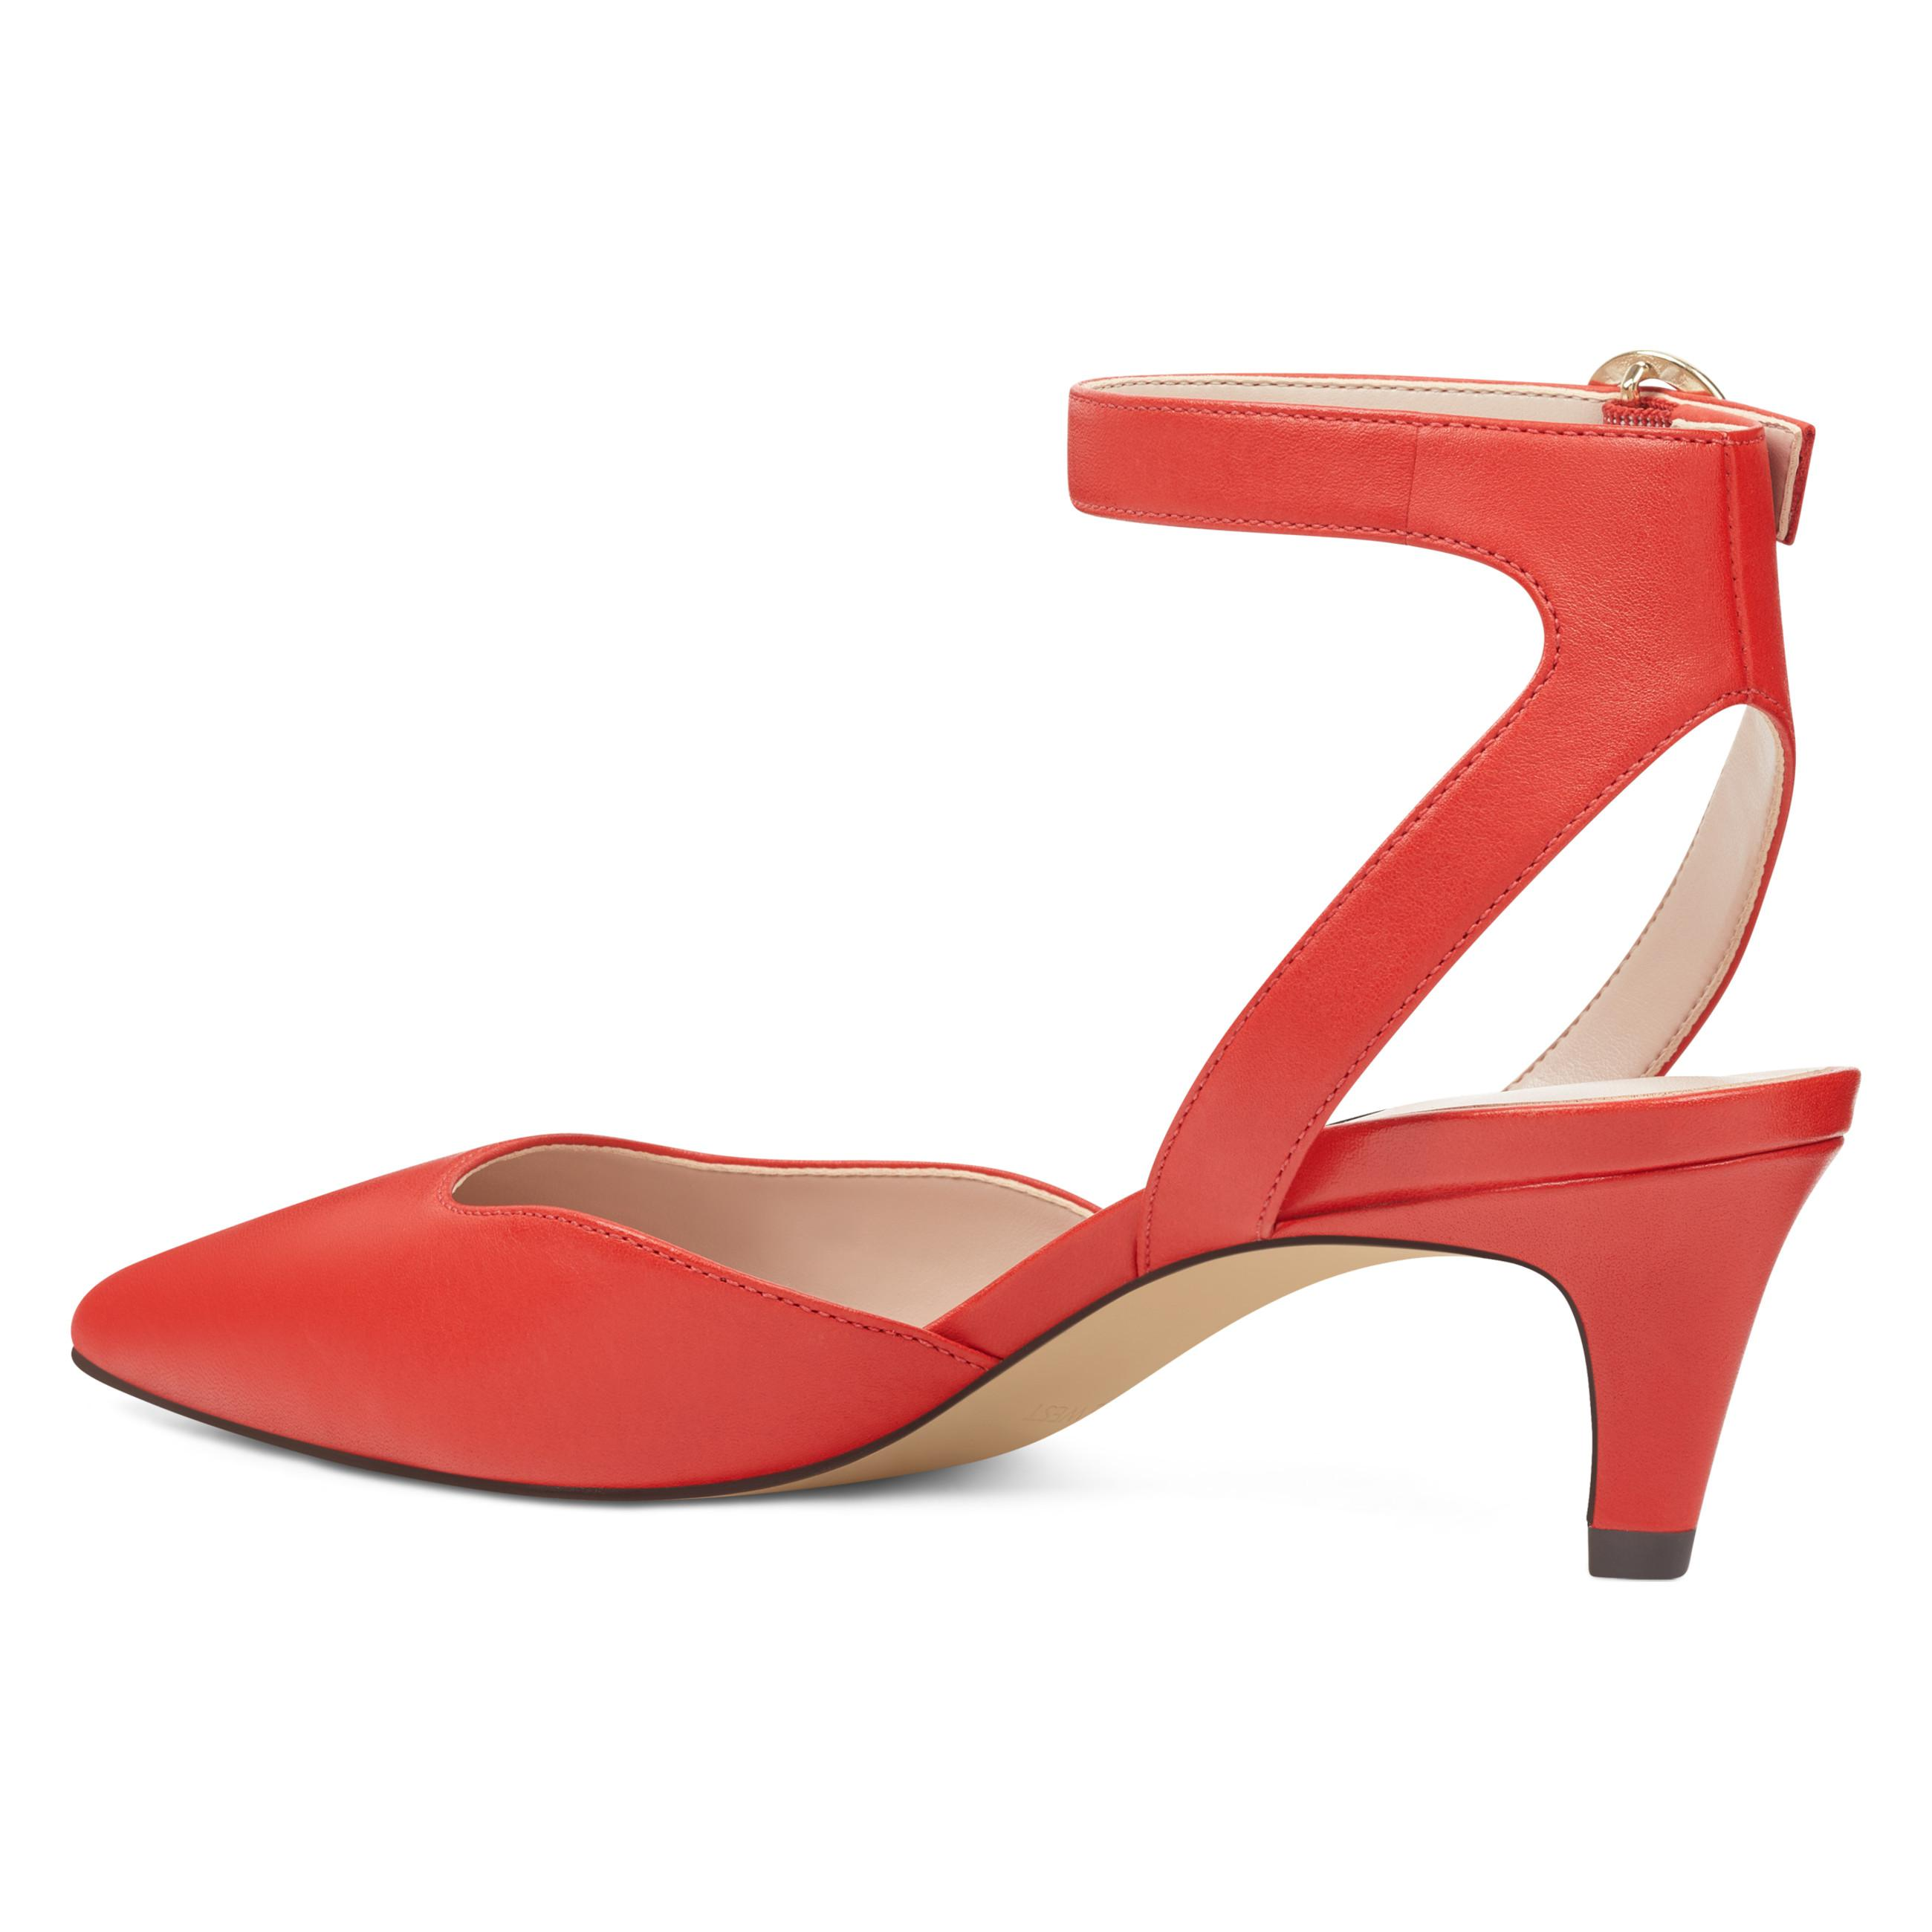 80d3d60dee1 Lyst - Nine West Quinteena Ankle Strap Pumps in Red - Save 53%